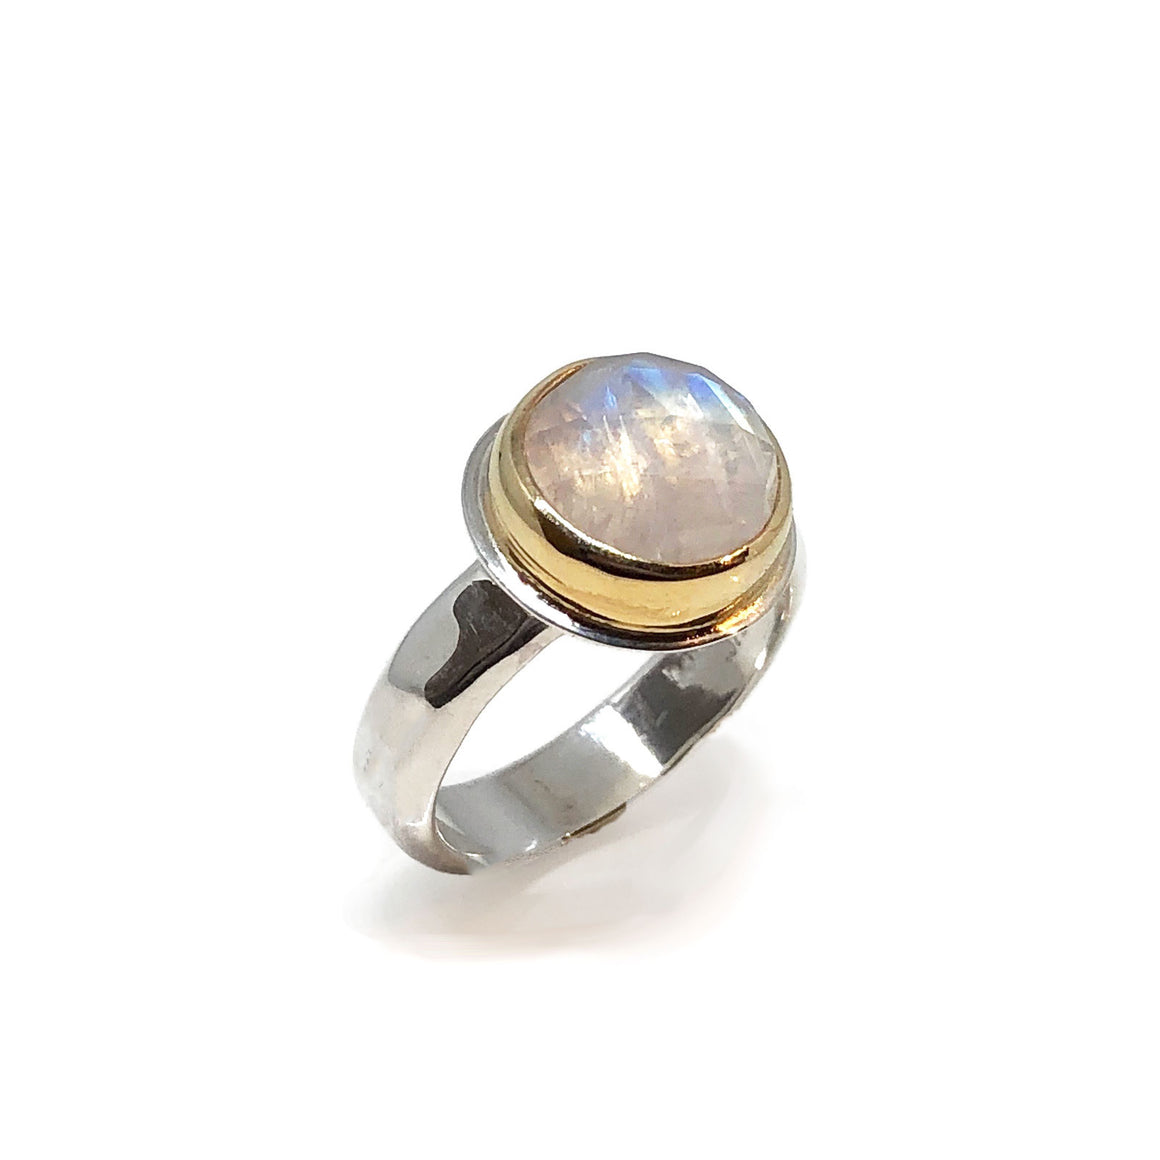 Rose Cut Moonstone Ring Sterling Silver and Gold